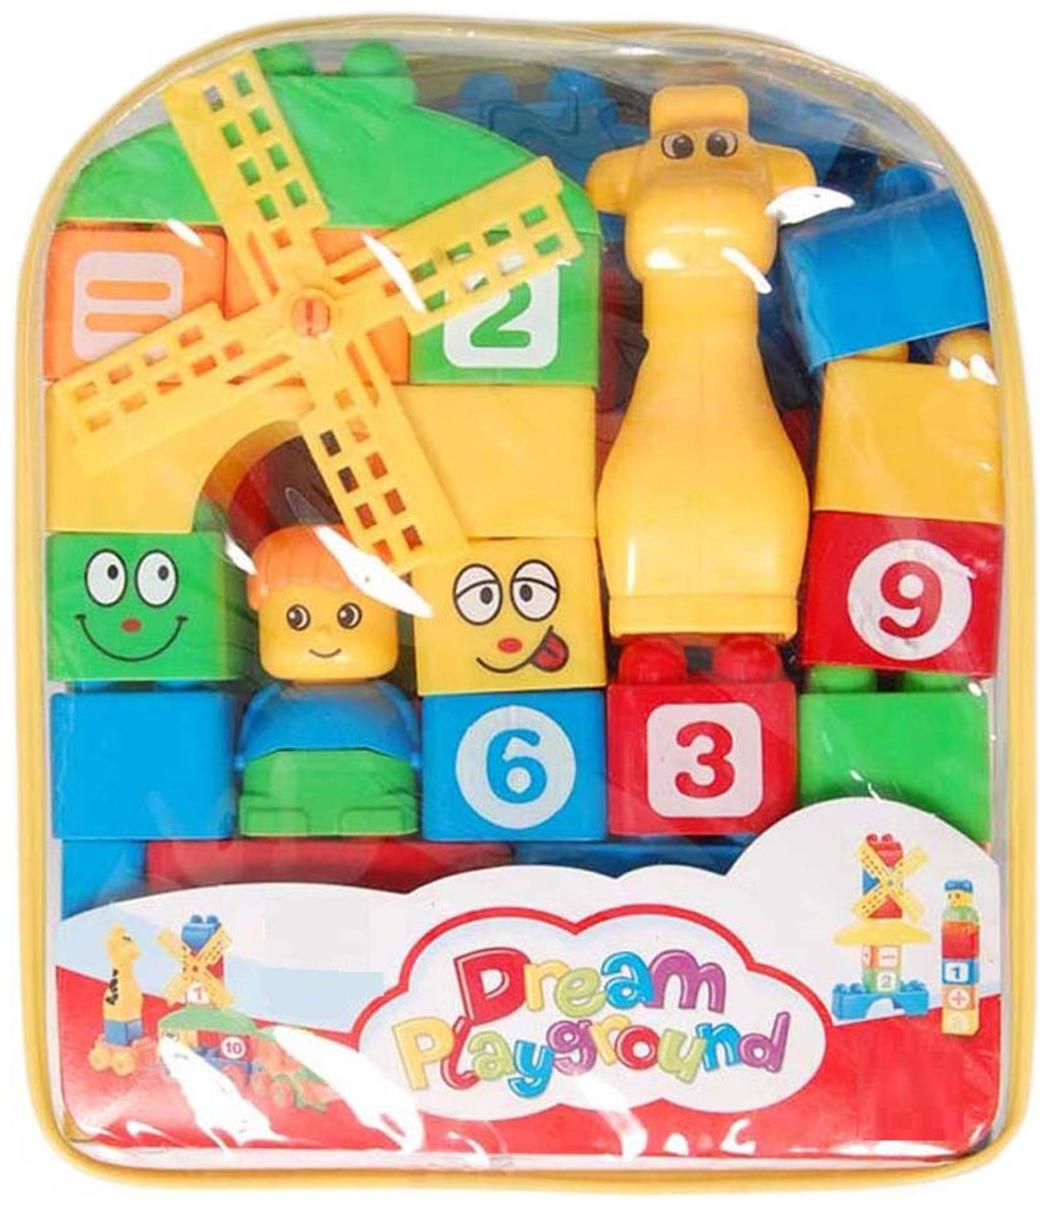 35pcs. Building Blocks for kids by New Pinch